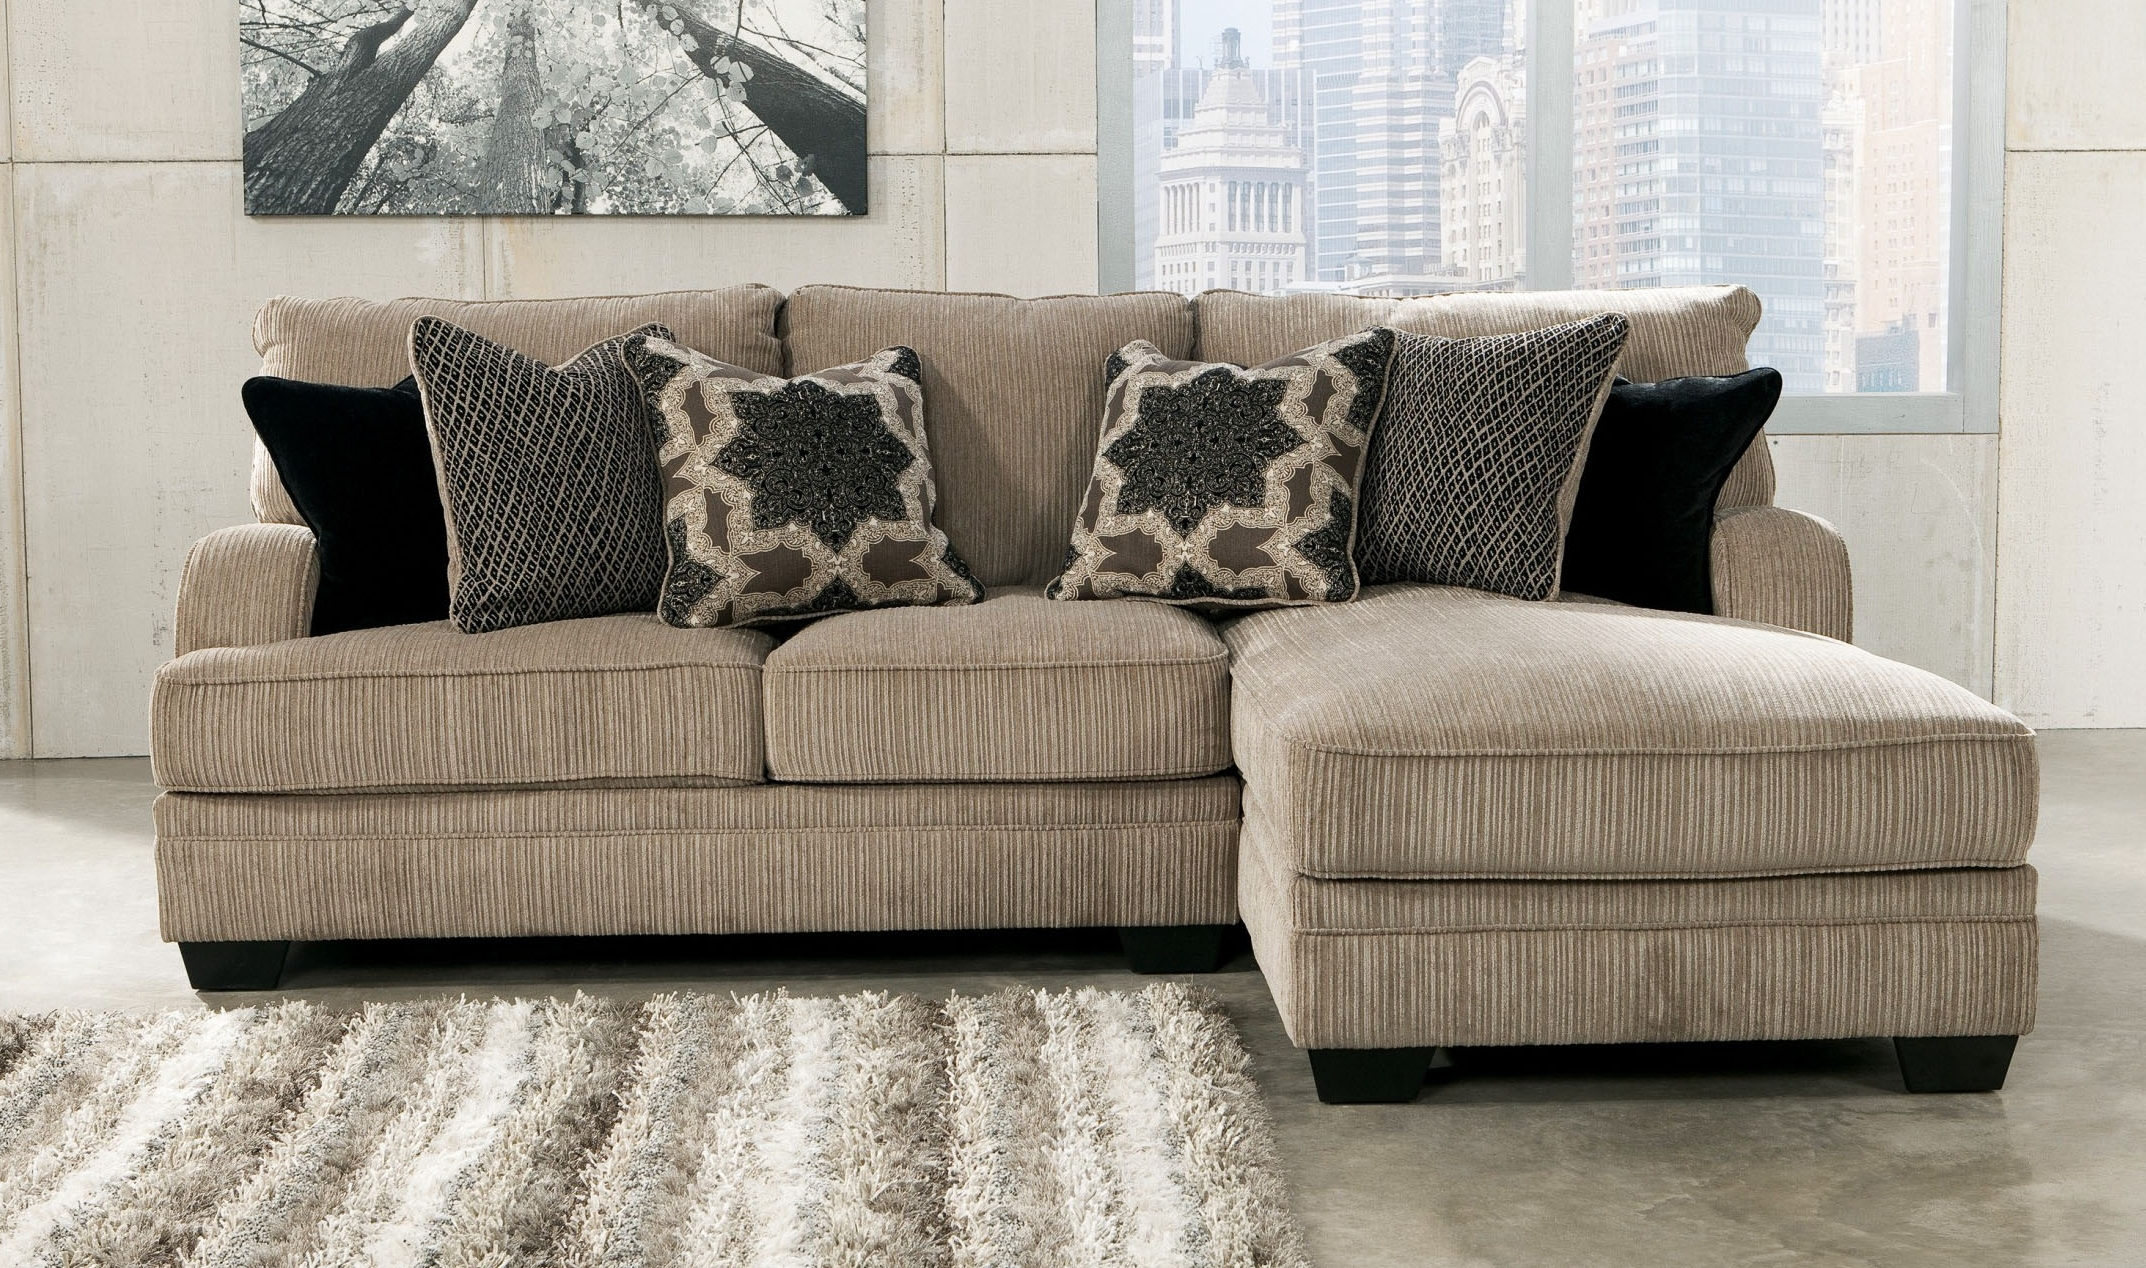 Small Sectional Furniture For The Best Looks Of Your House Pertaining To Most Current Sectional Sofas For Small Places (View 16 of 20)